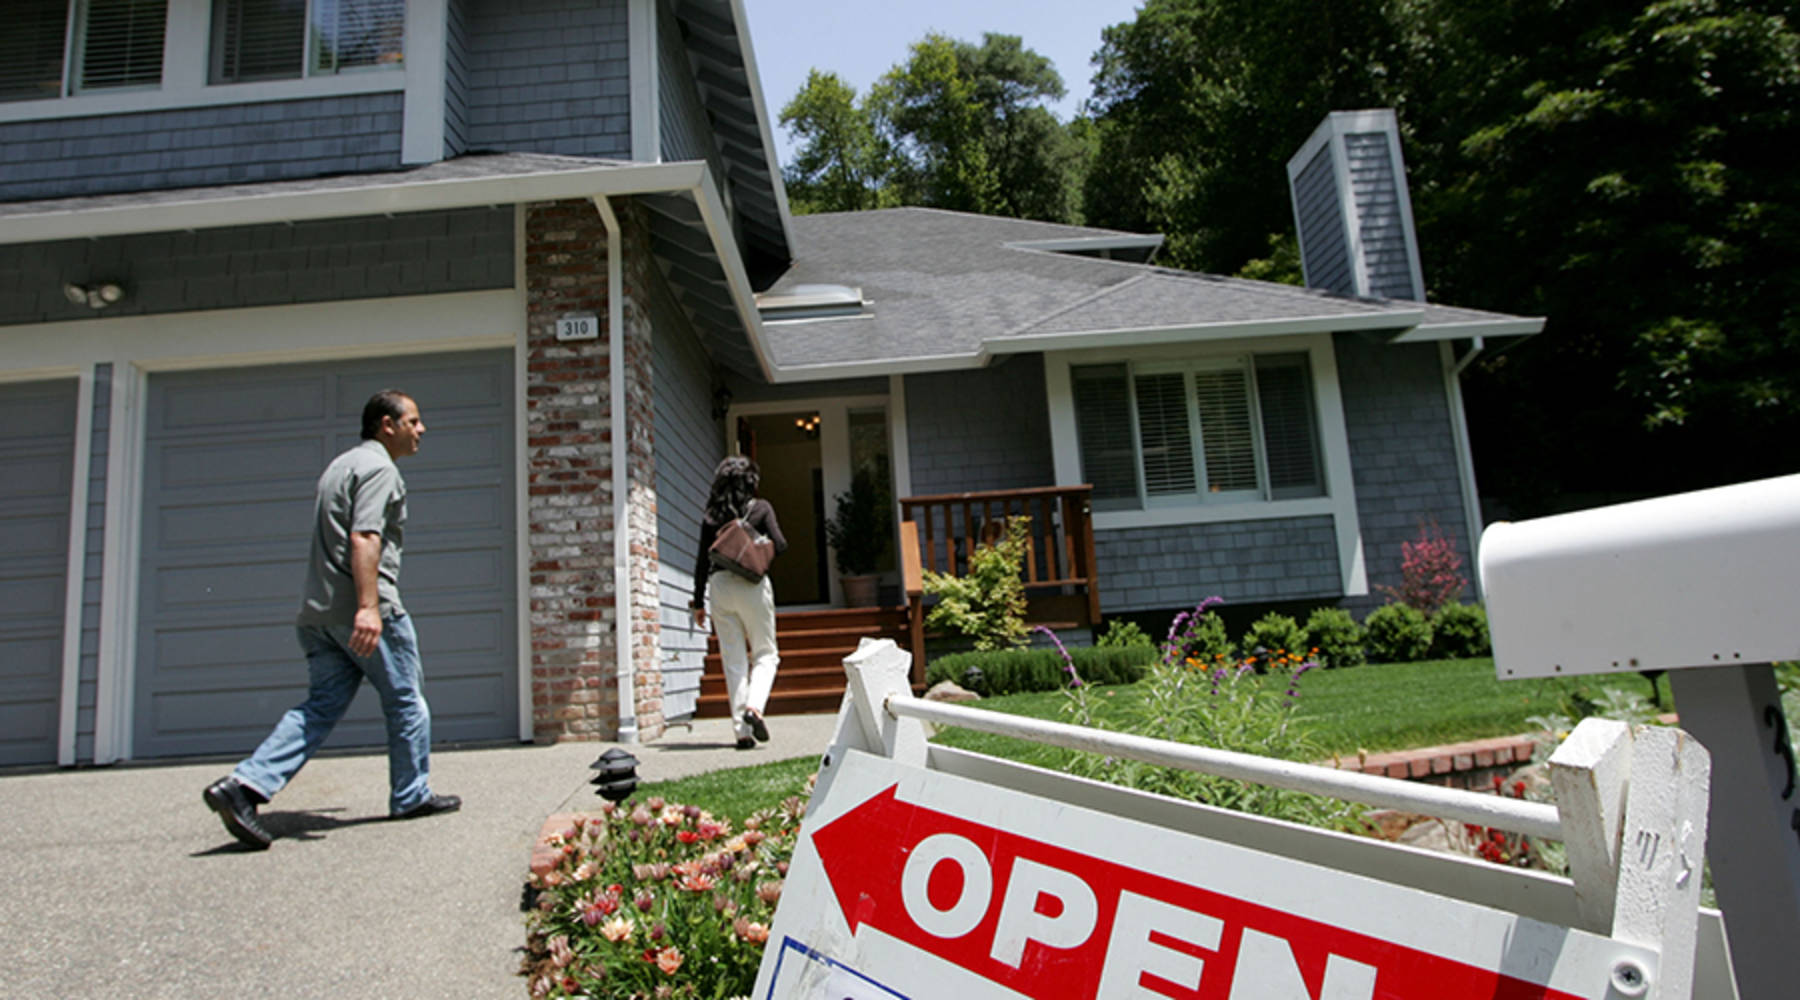 More people could qualify for mortgages under new rule